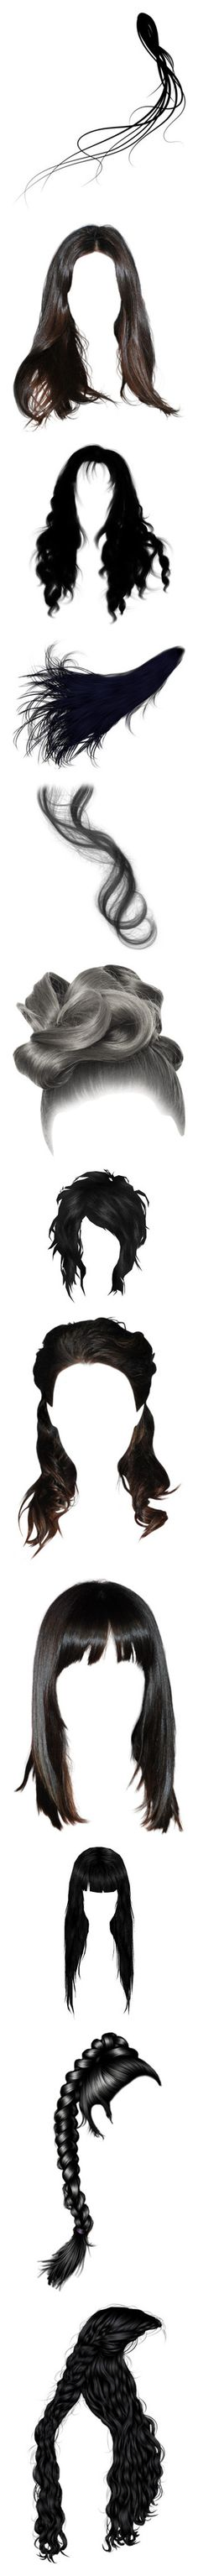 """""""doll hair black"""" by shadow-dancer-artist ❤ liked on Polyvore featuring hair, wig, doll parts, dolls, doll hair, hairstyles, backgrounds, wigs, dolls parts hair and head"""